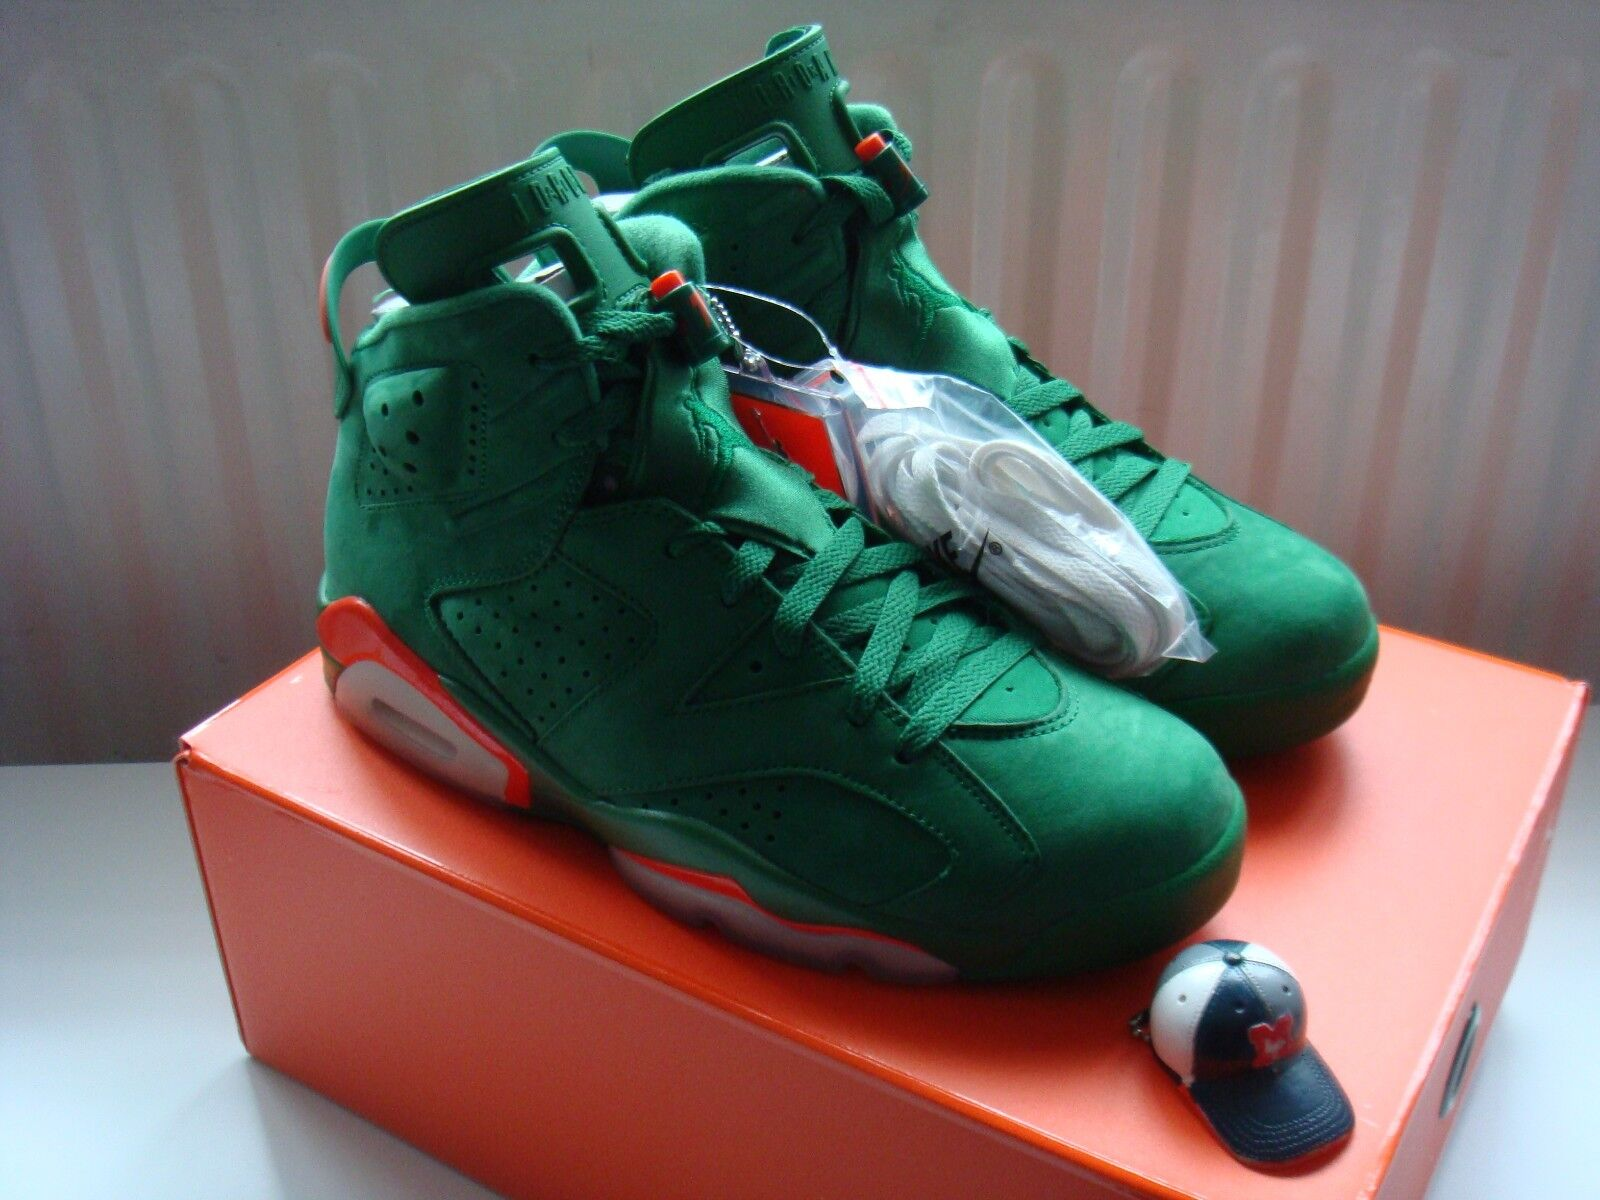 Nike Air Jordan VI 6 NRG Gatorade Green Mike/Infrared Suede US 12/Be Like Mike/Infrared Green 5b030c